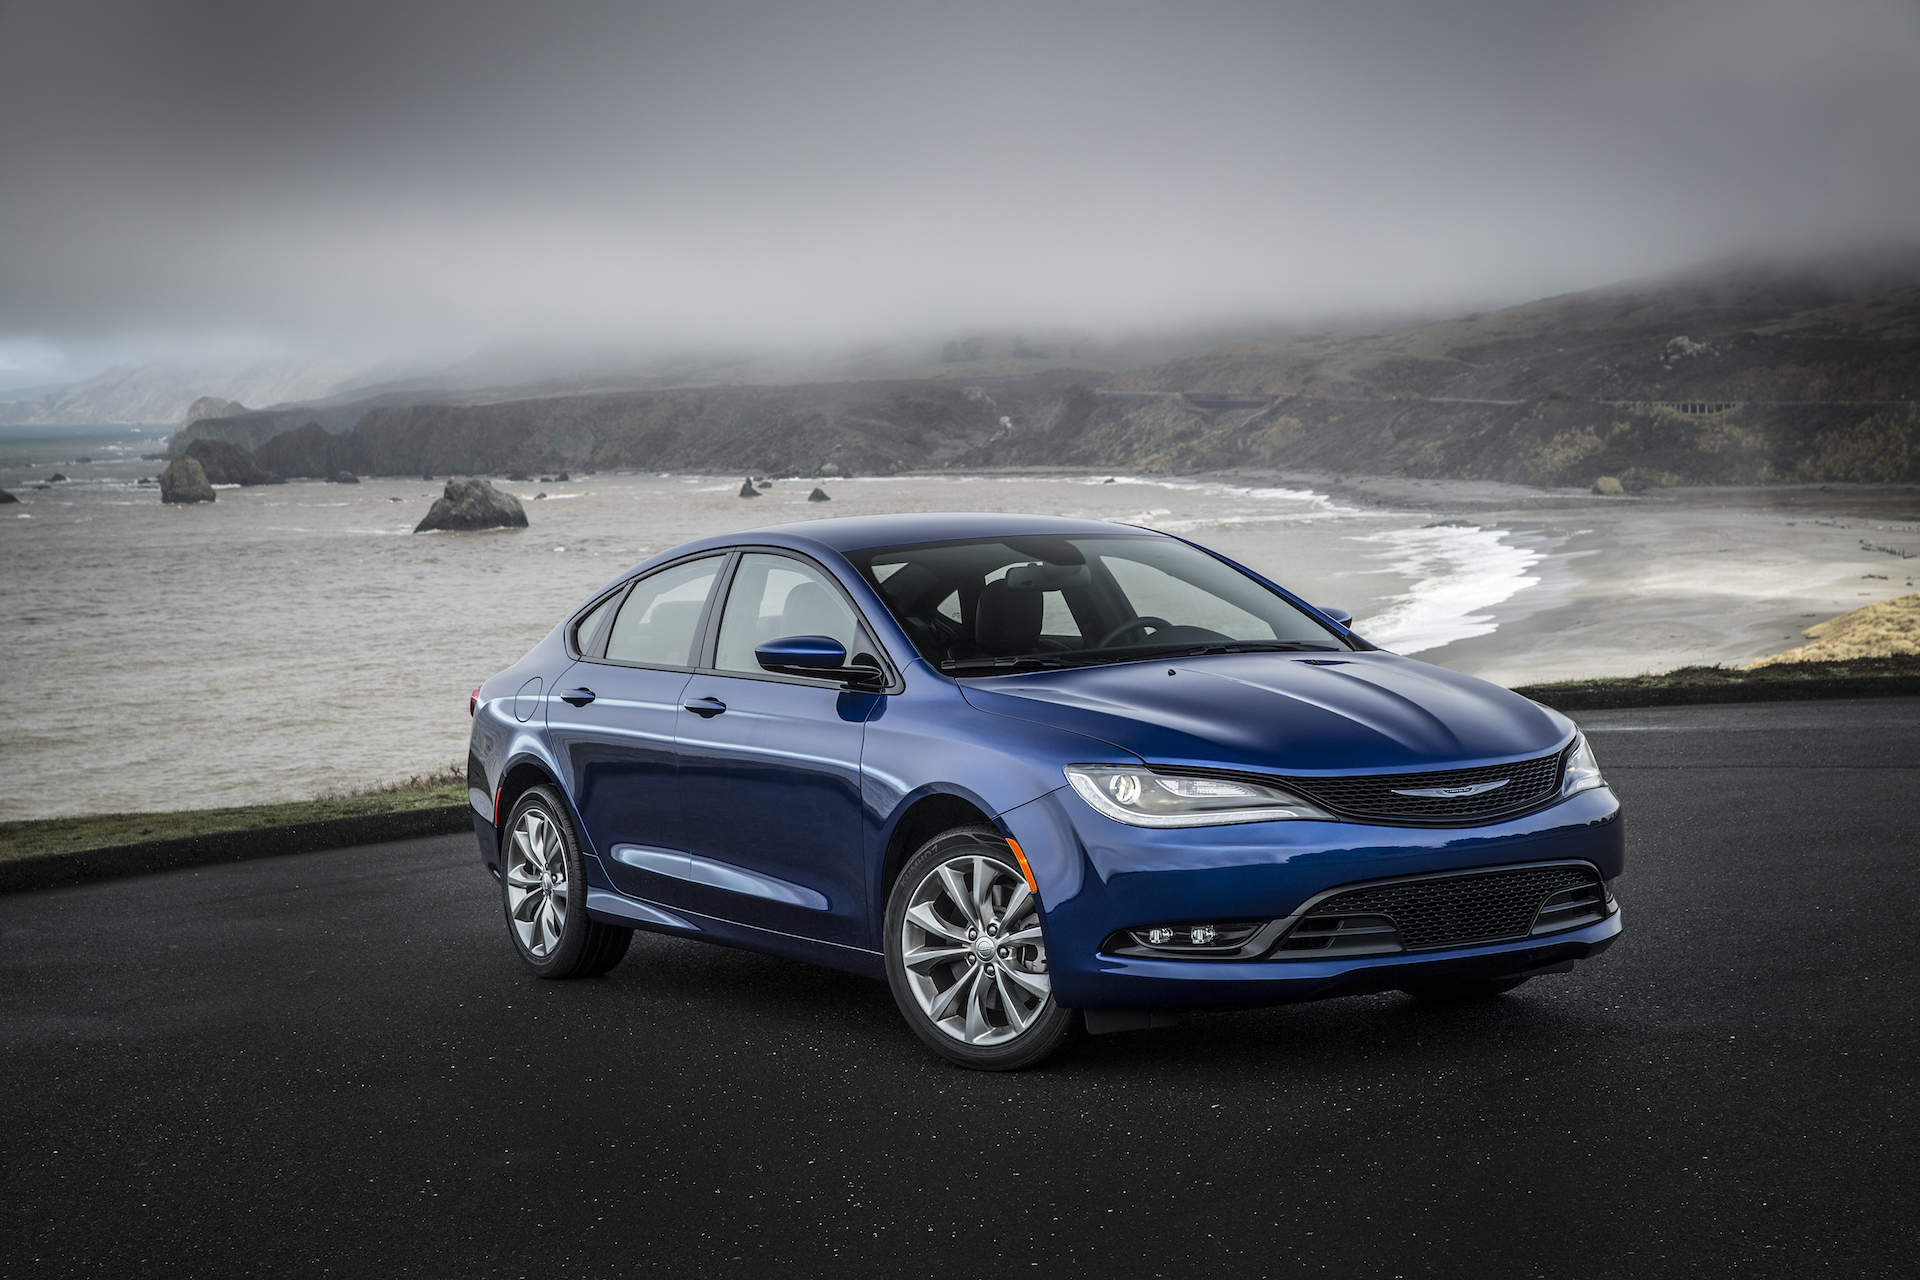 2017 Chrysler 200 Review, Ratings, Specs, Prices, and ...